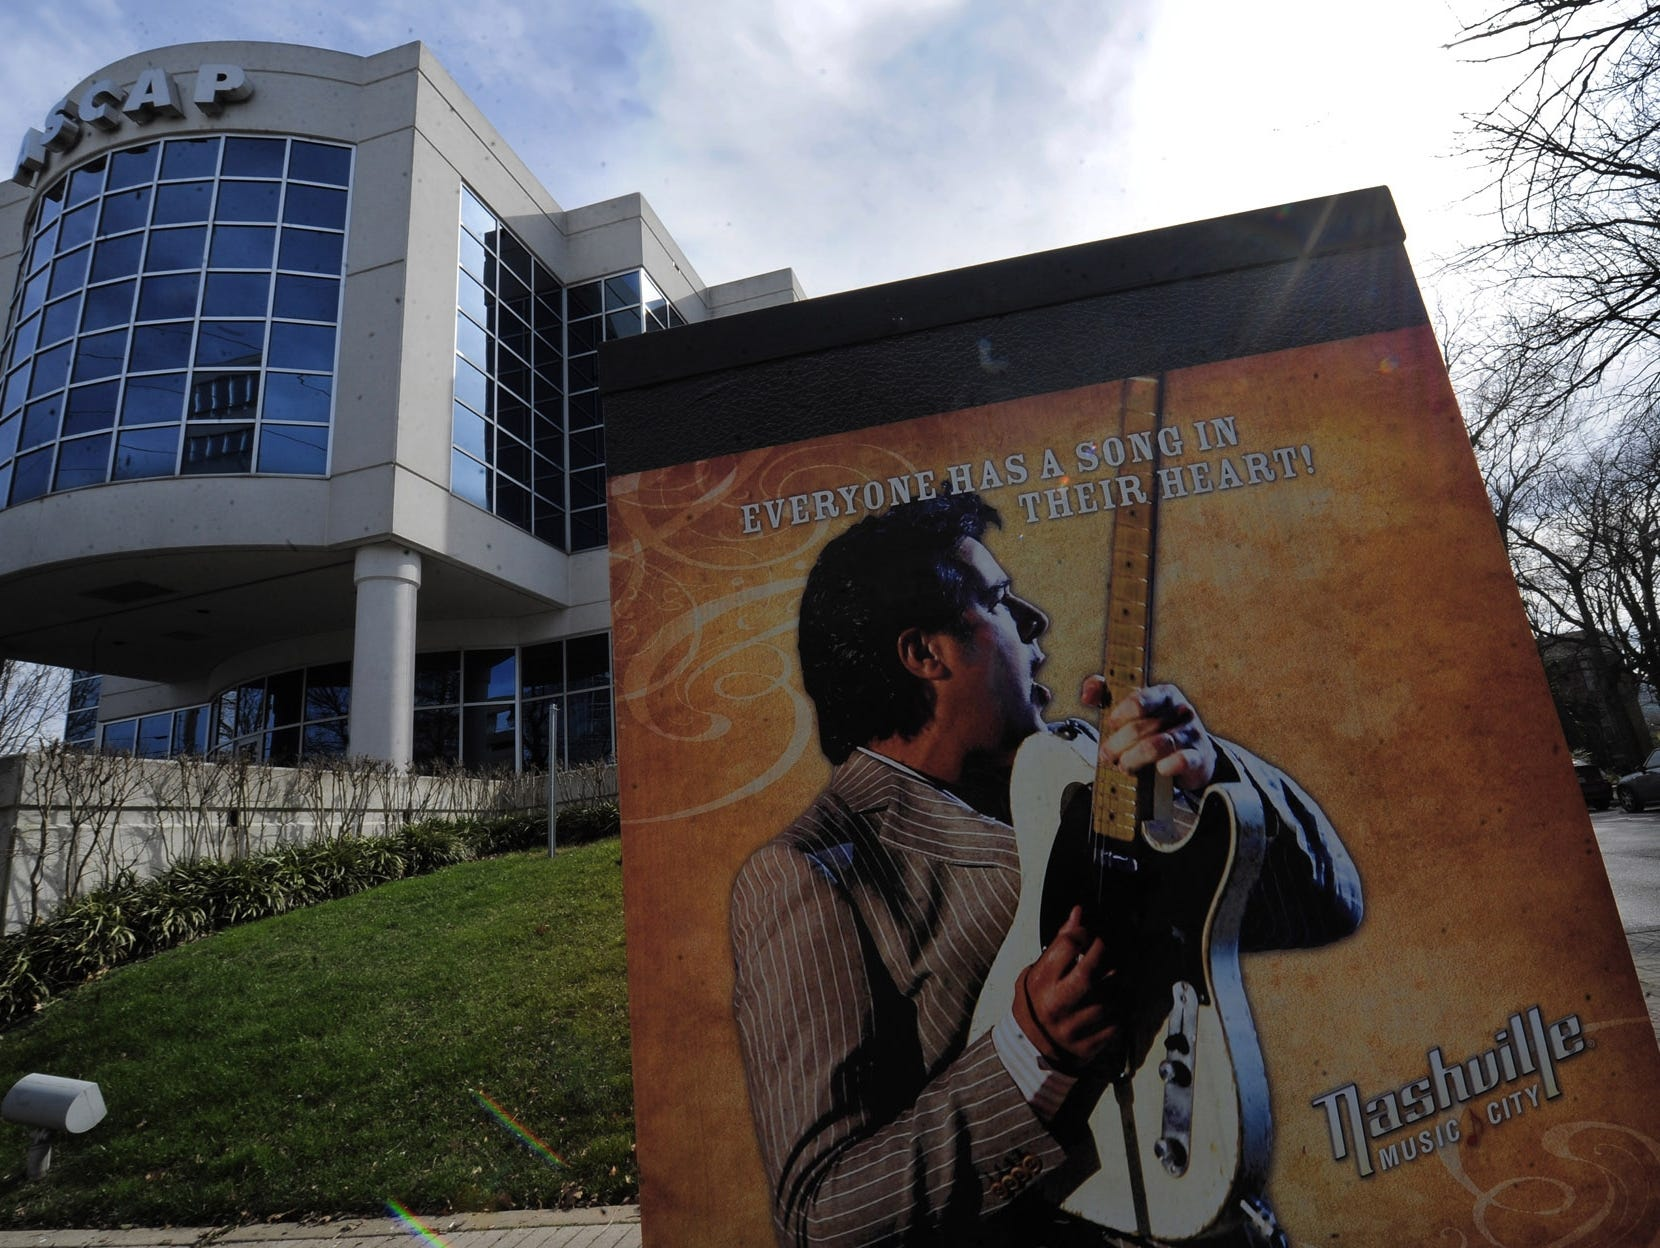 ... Many Of The Big Labels Have Downsized, Leading To A Shift In The  Traditional Look And Feel Of Music Row In Nashville, Tenn. As Music Related  Firms Move ...